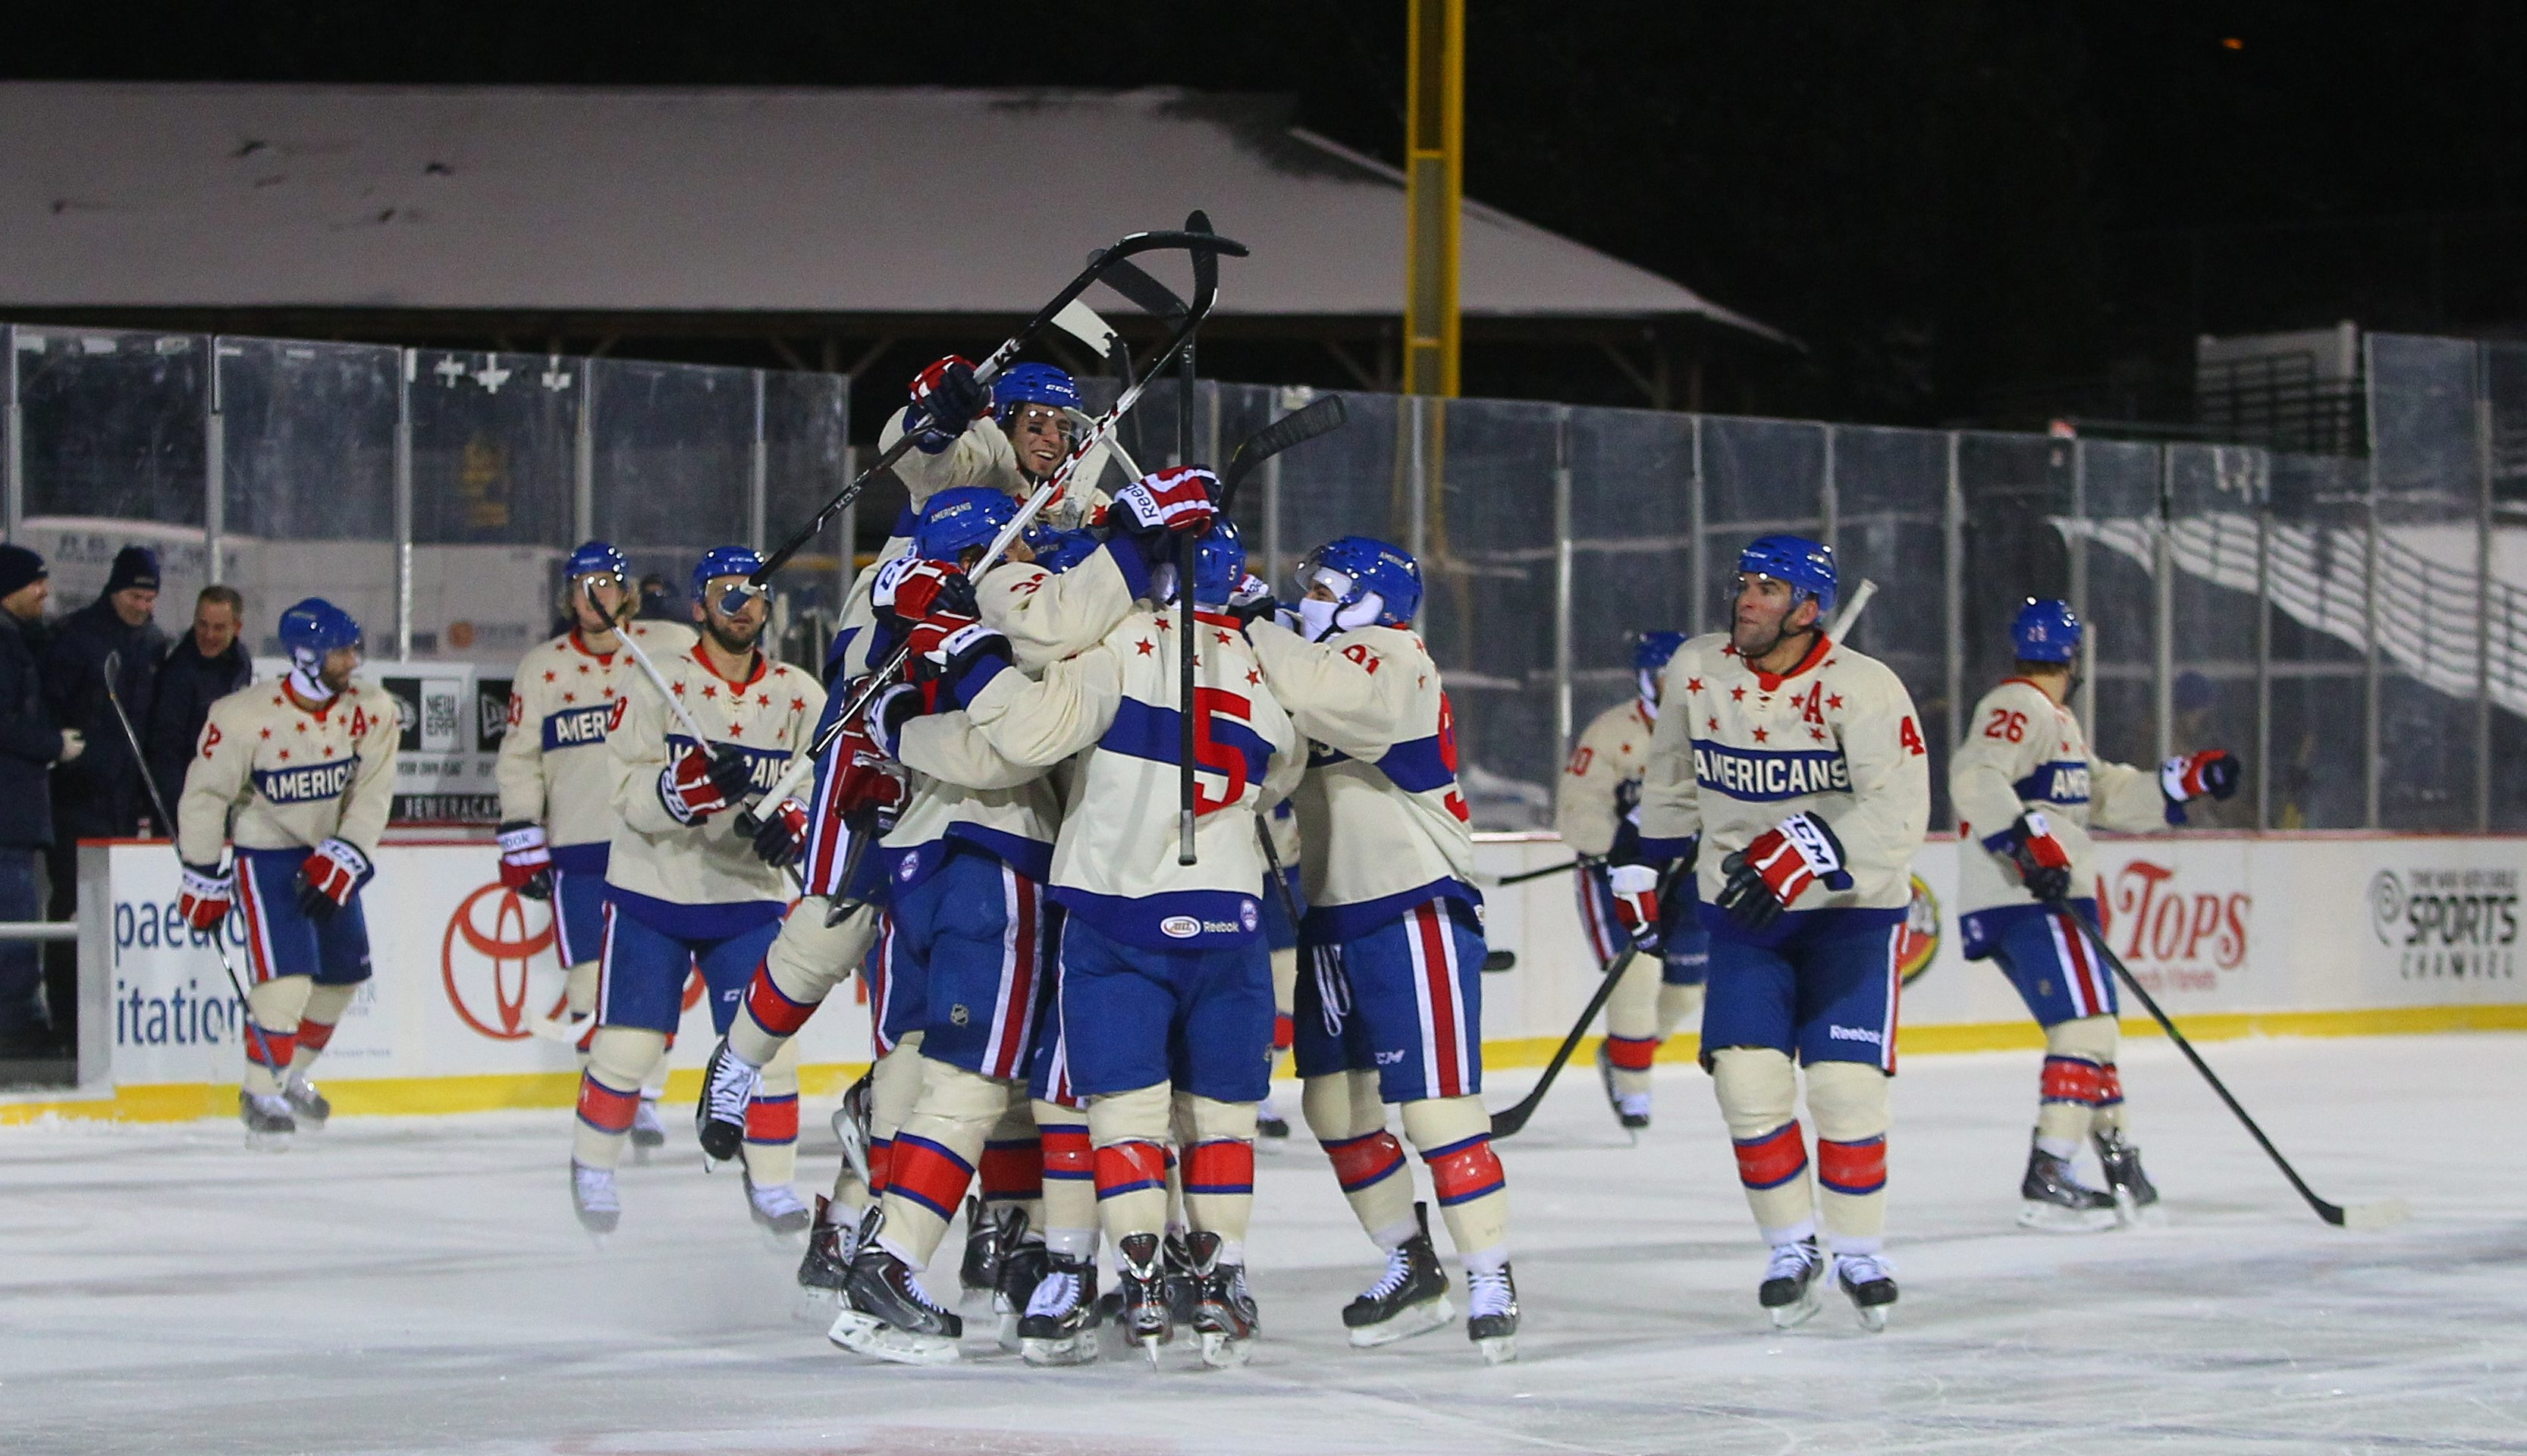 A pack of Rochester Americans celebrates Friday's shootout win over the Lake Erie Monsters at Frontier Field. Matt Ellis scored the winner.